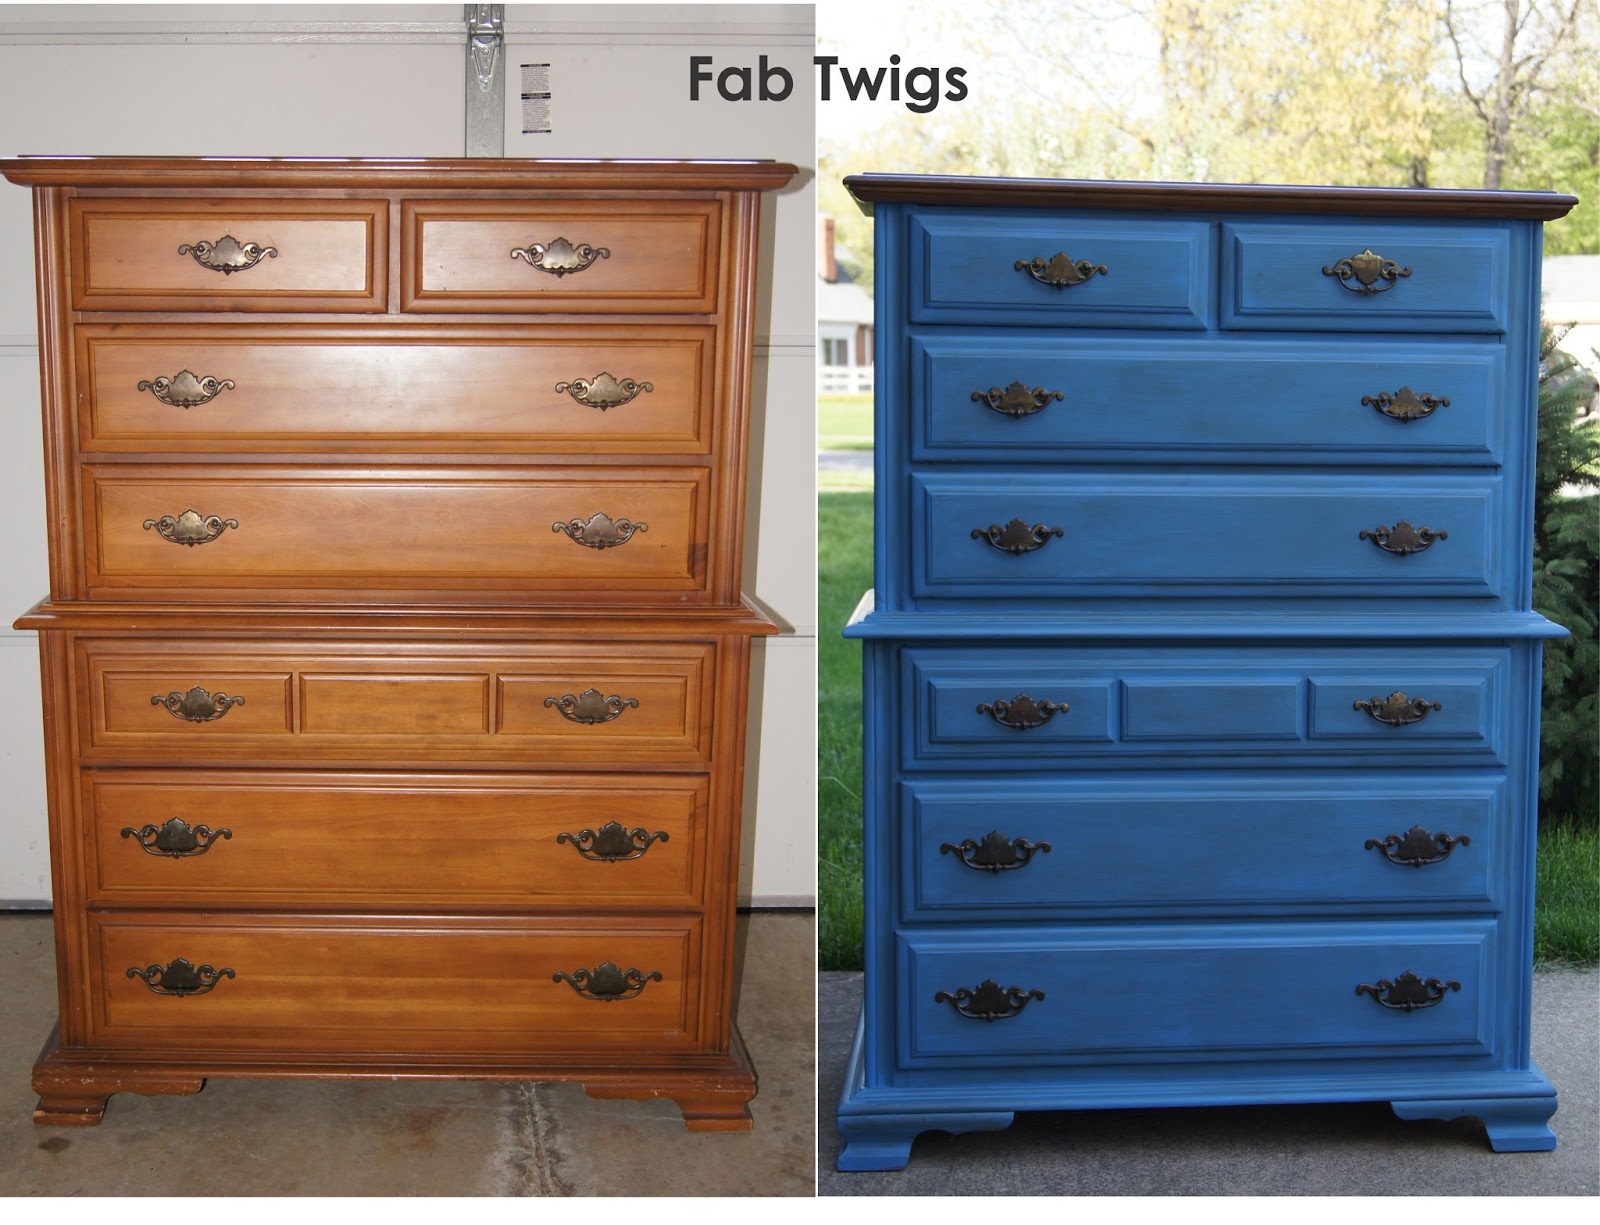 Fabtwigs Dresser Transformation Painting Furniture With